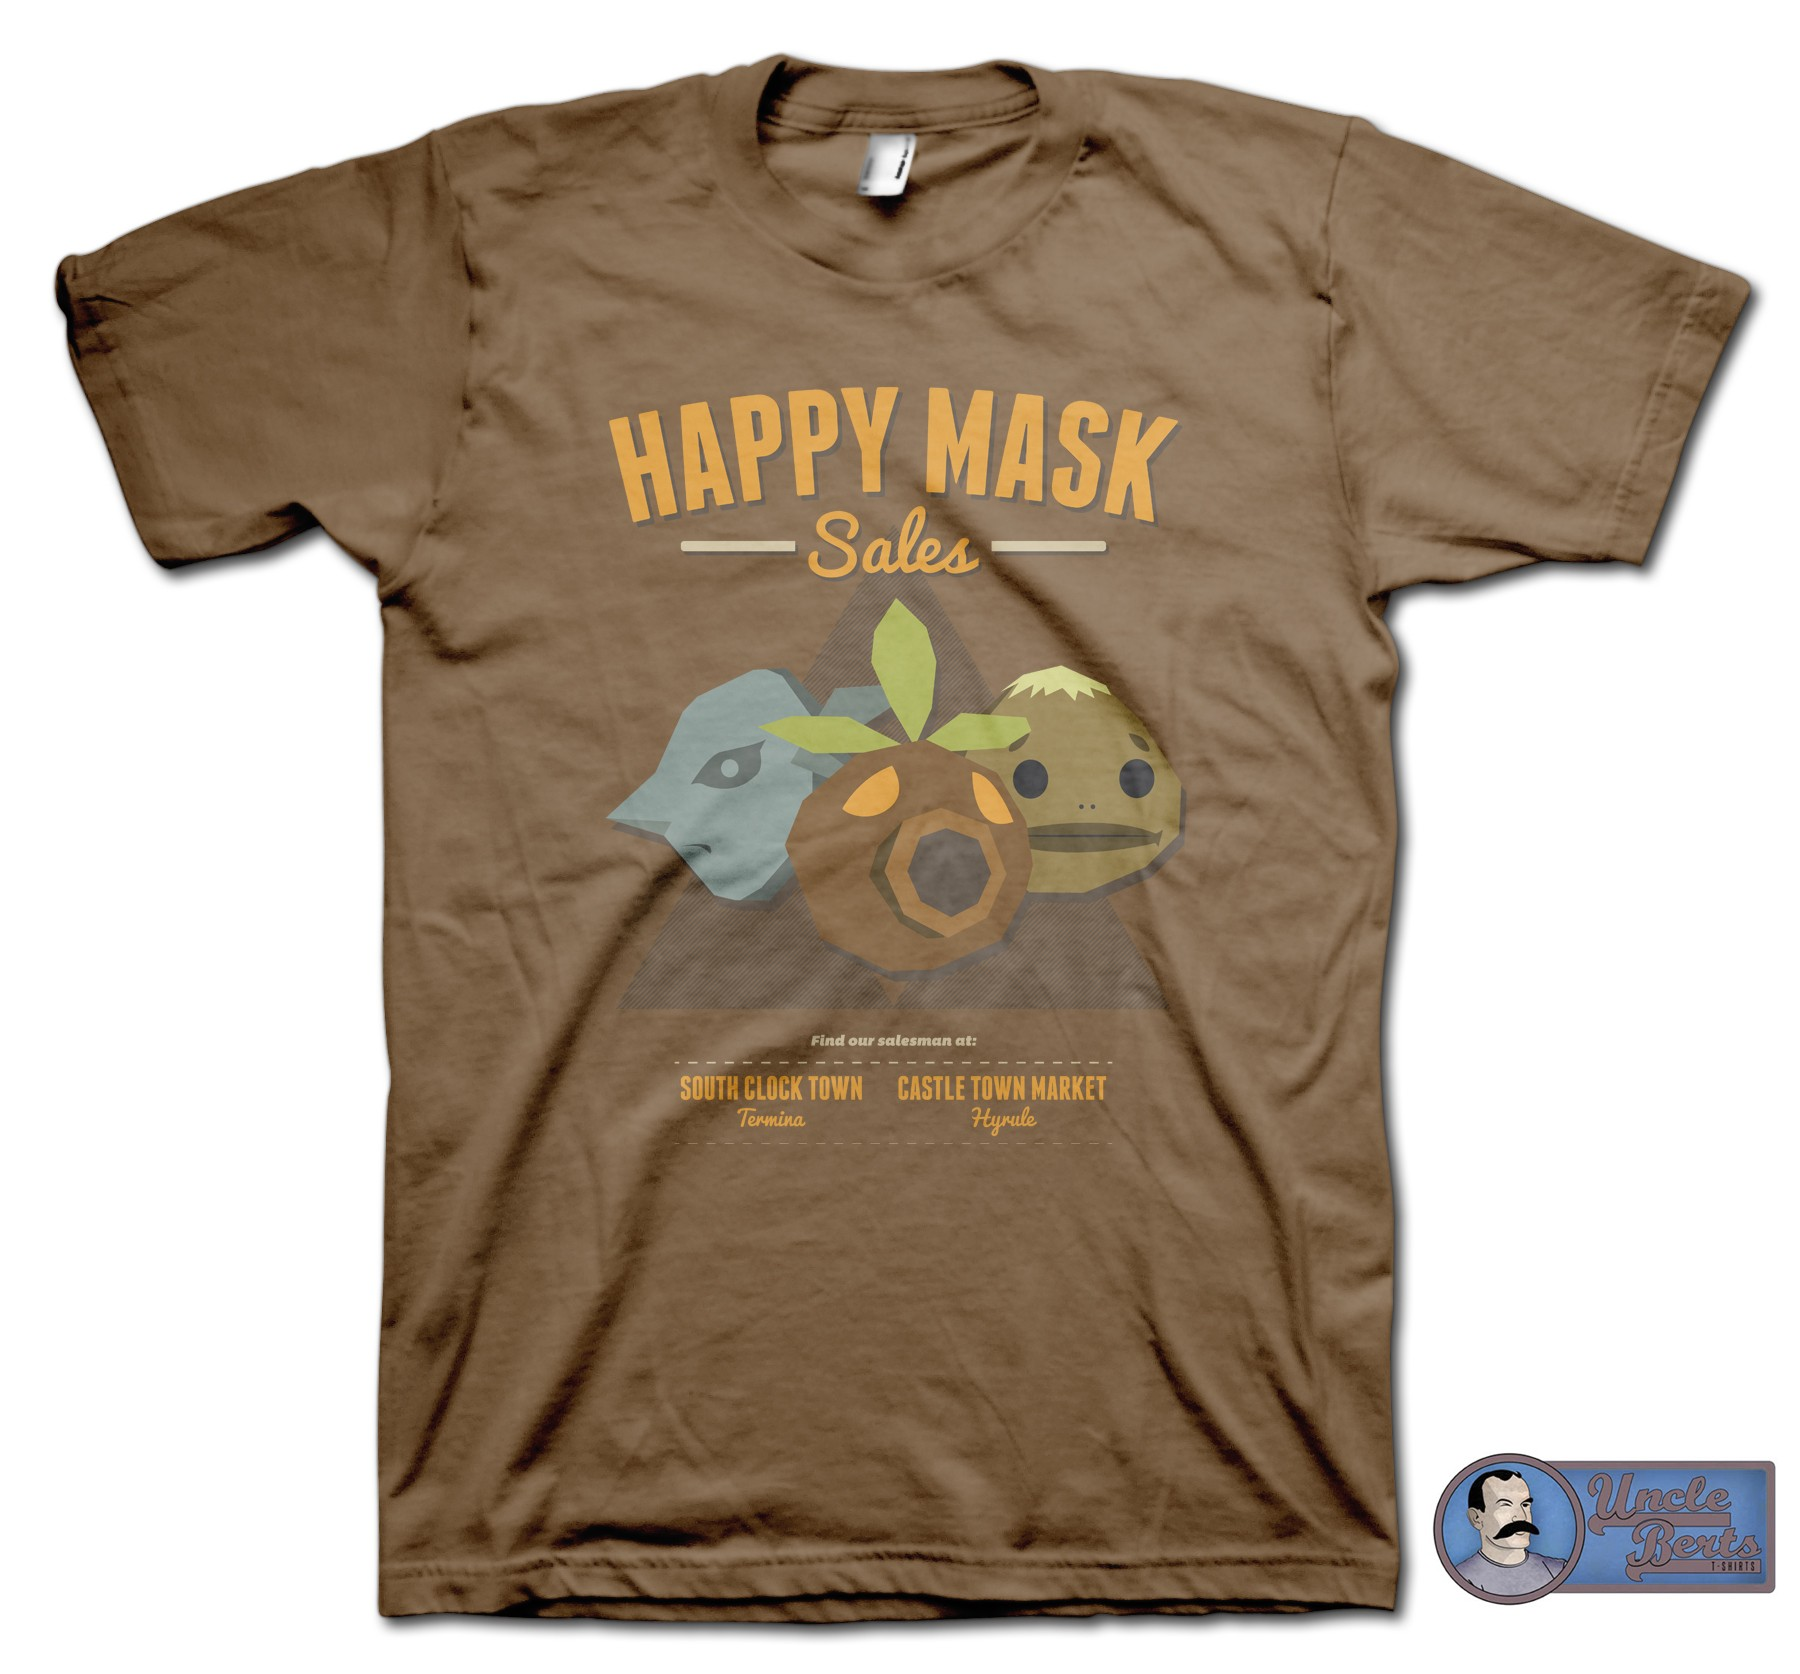 Happy Mask Sales T-Shirt - inspired by the Legend of Zelda series